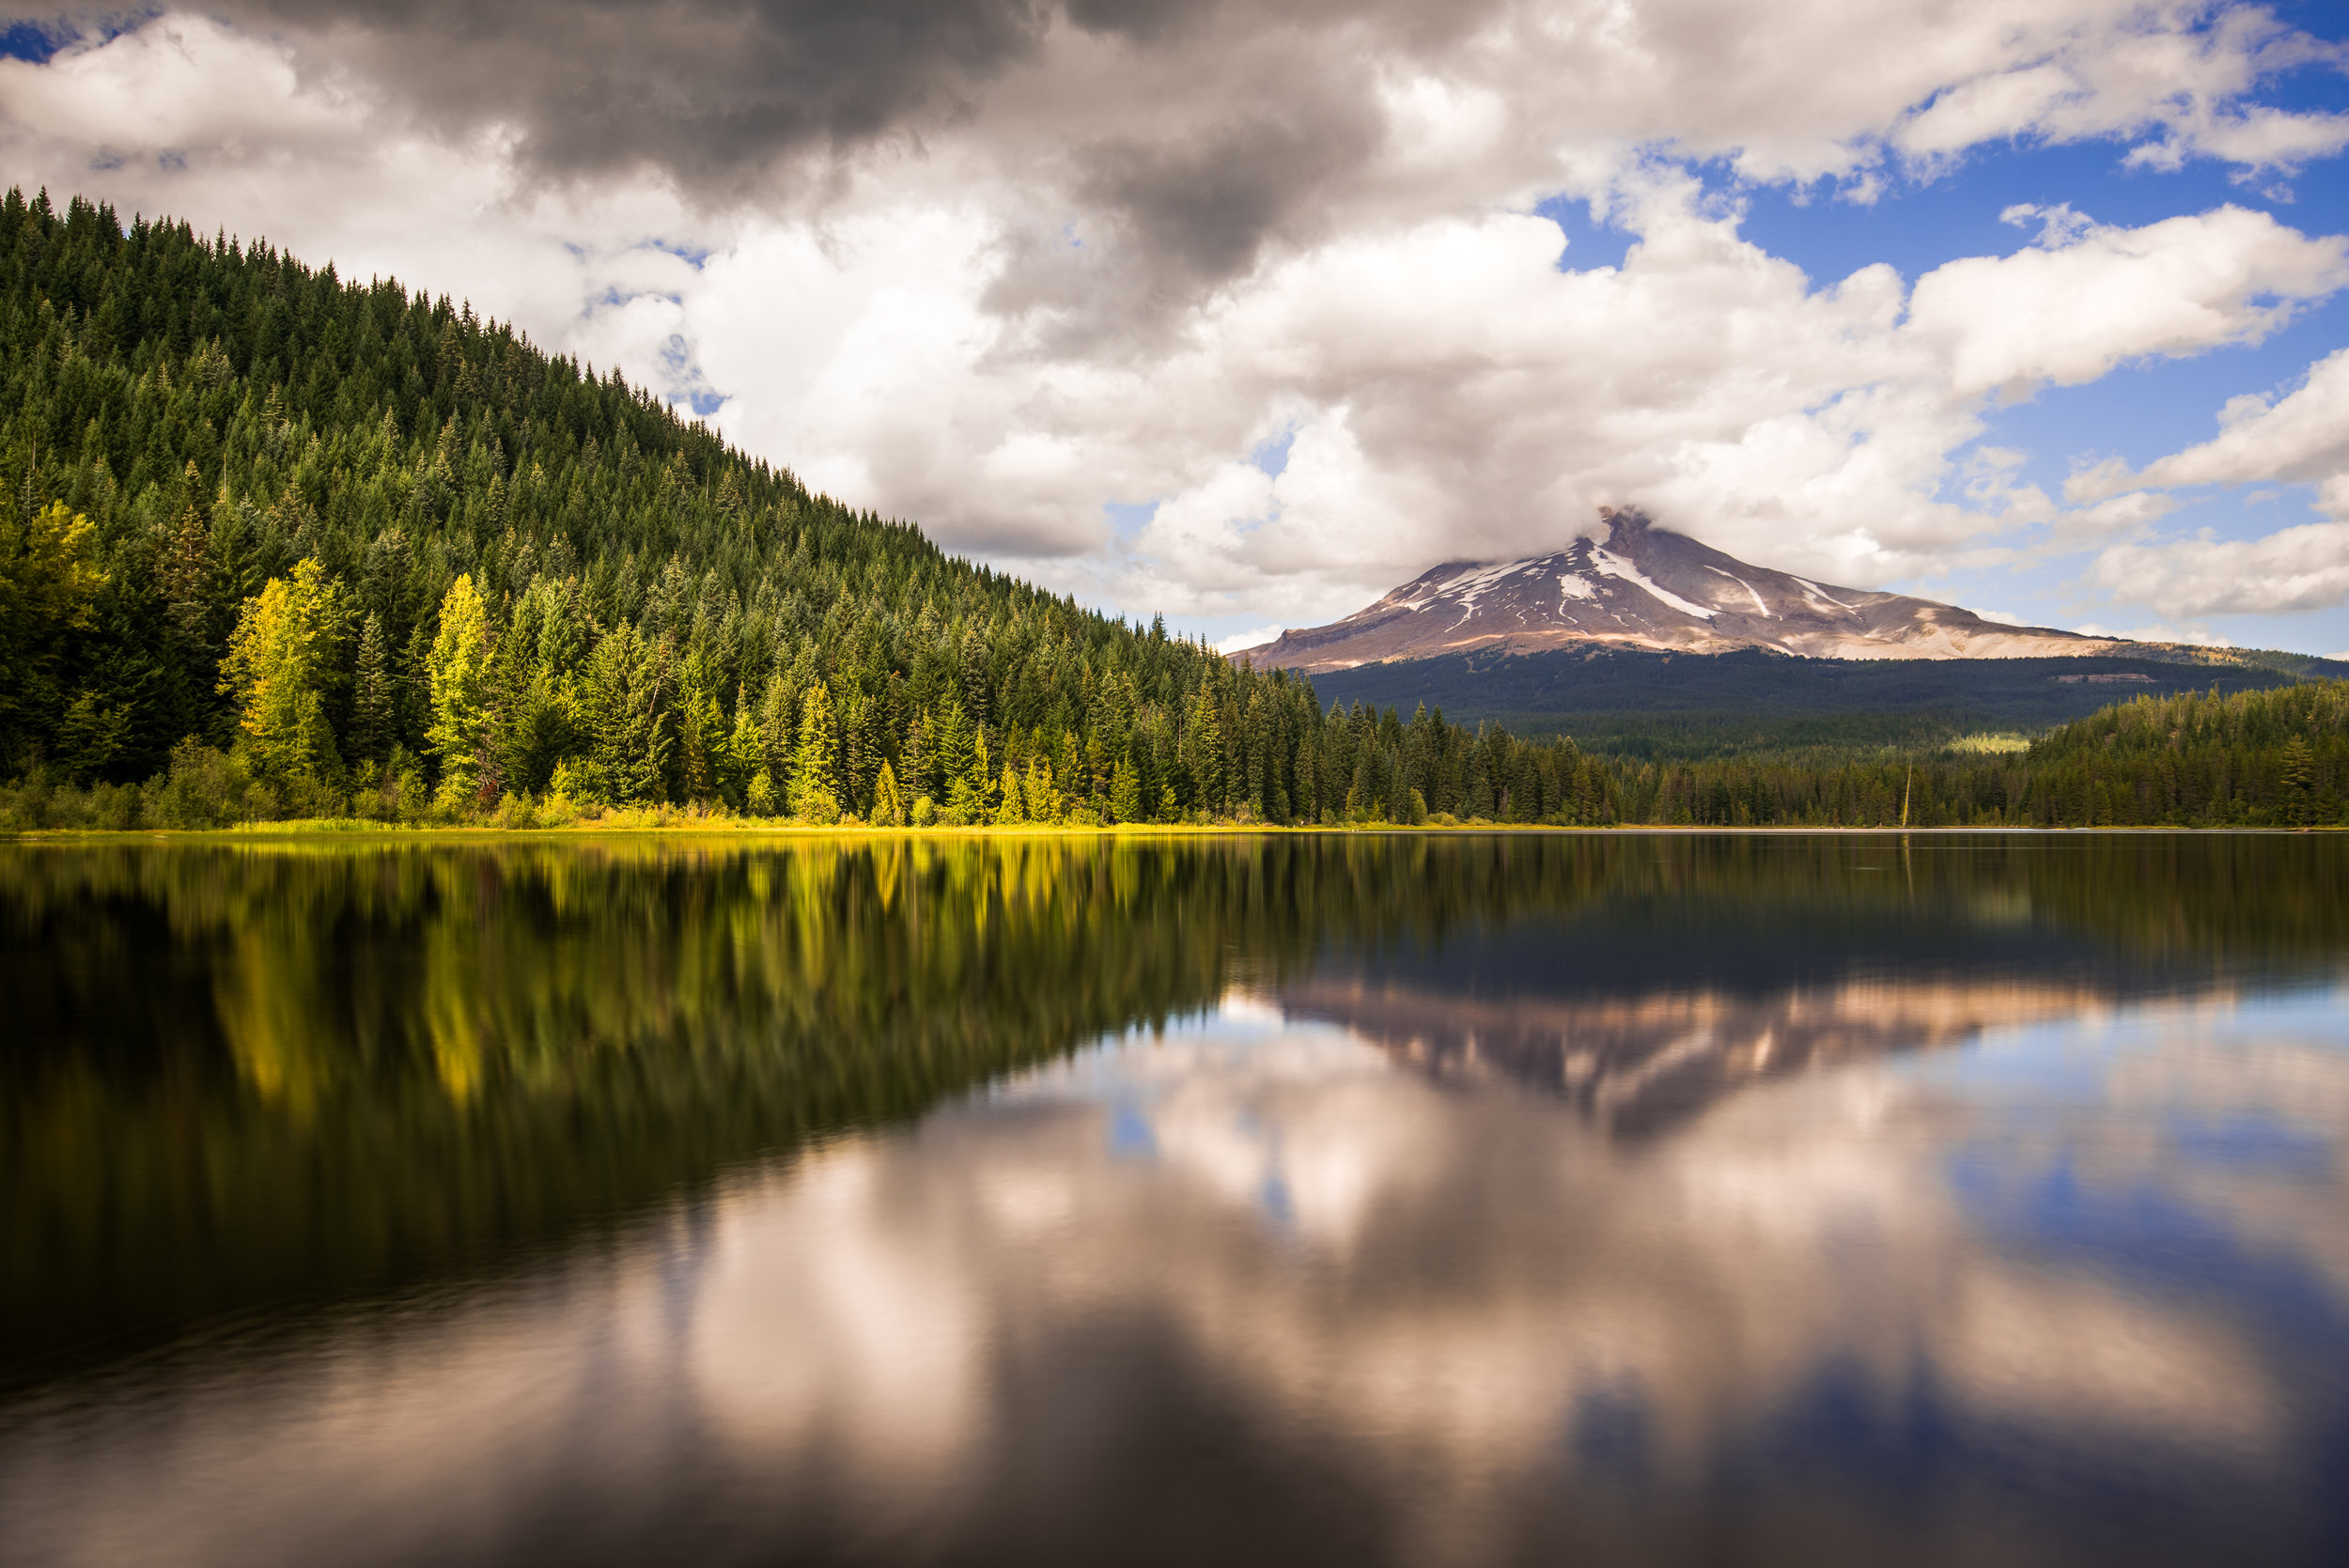 A blending of two images to get a mirrored scene classic to Oregon.